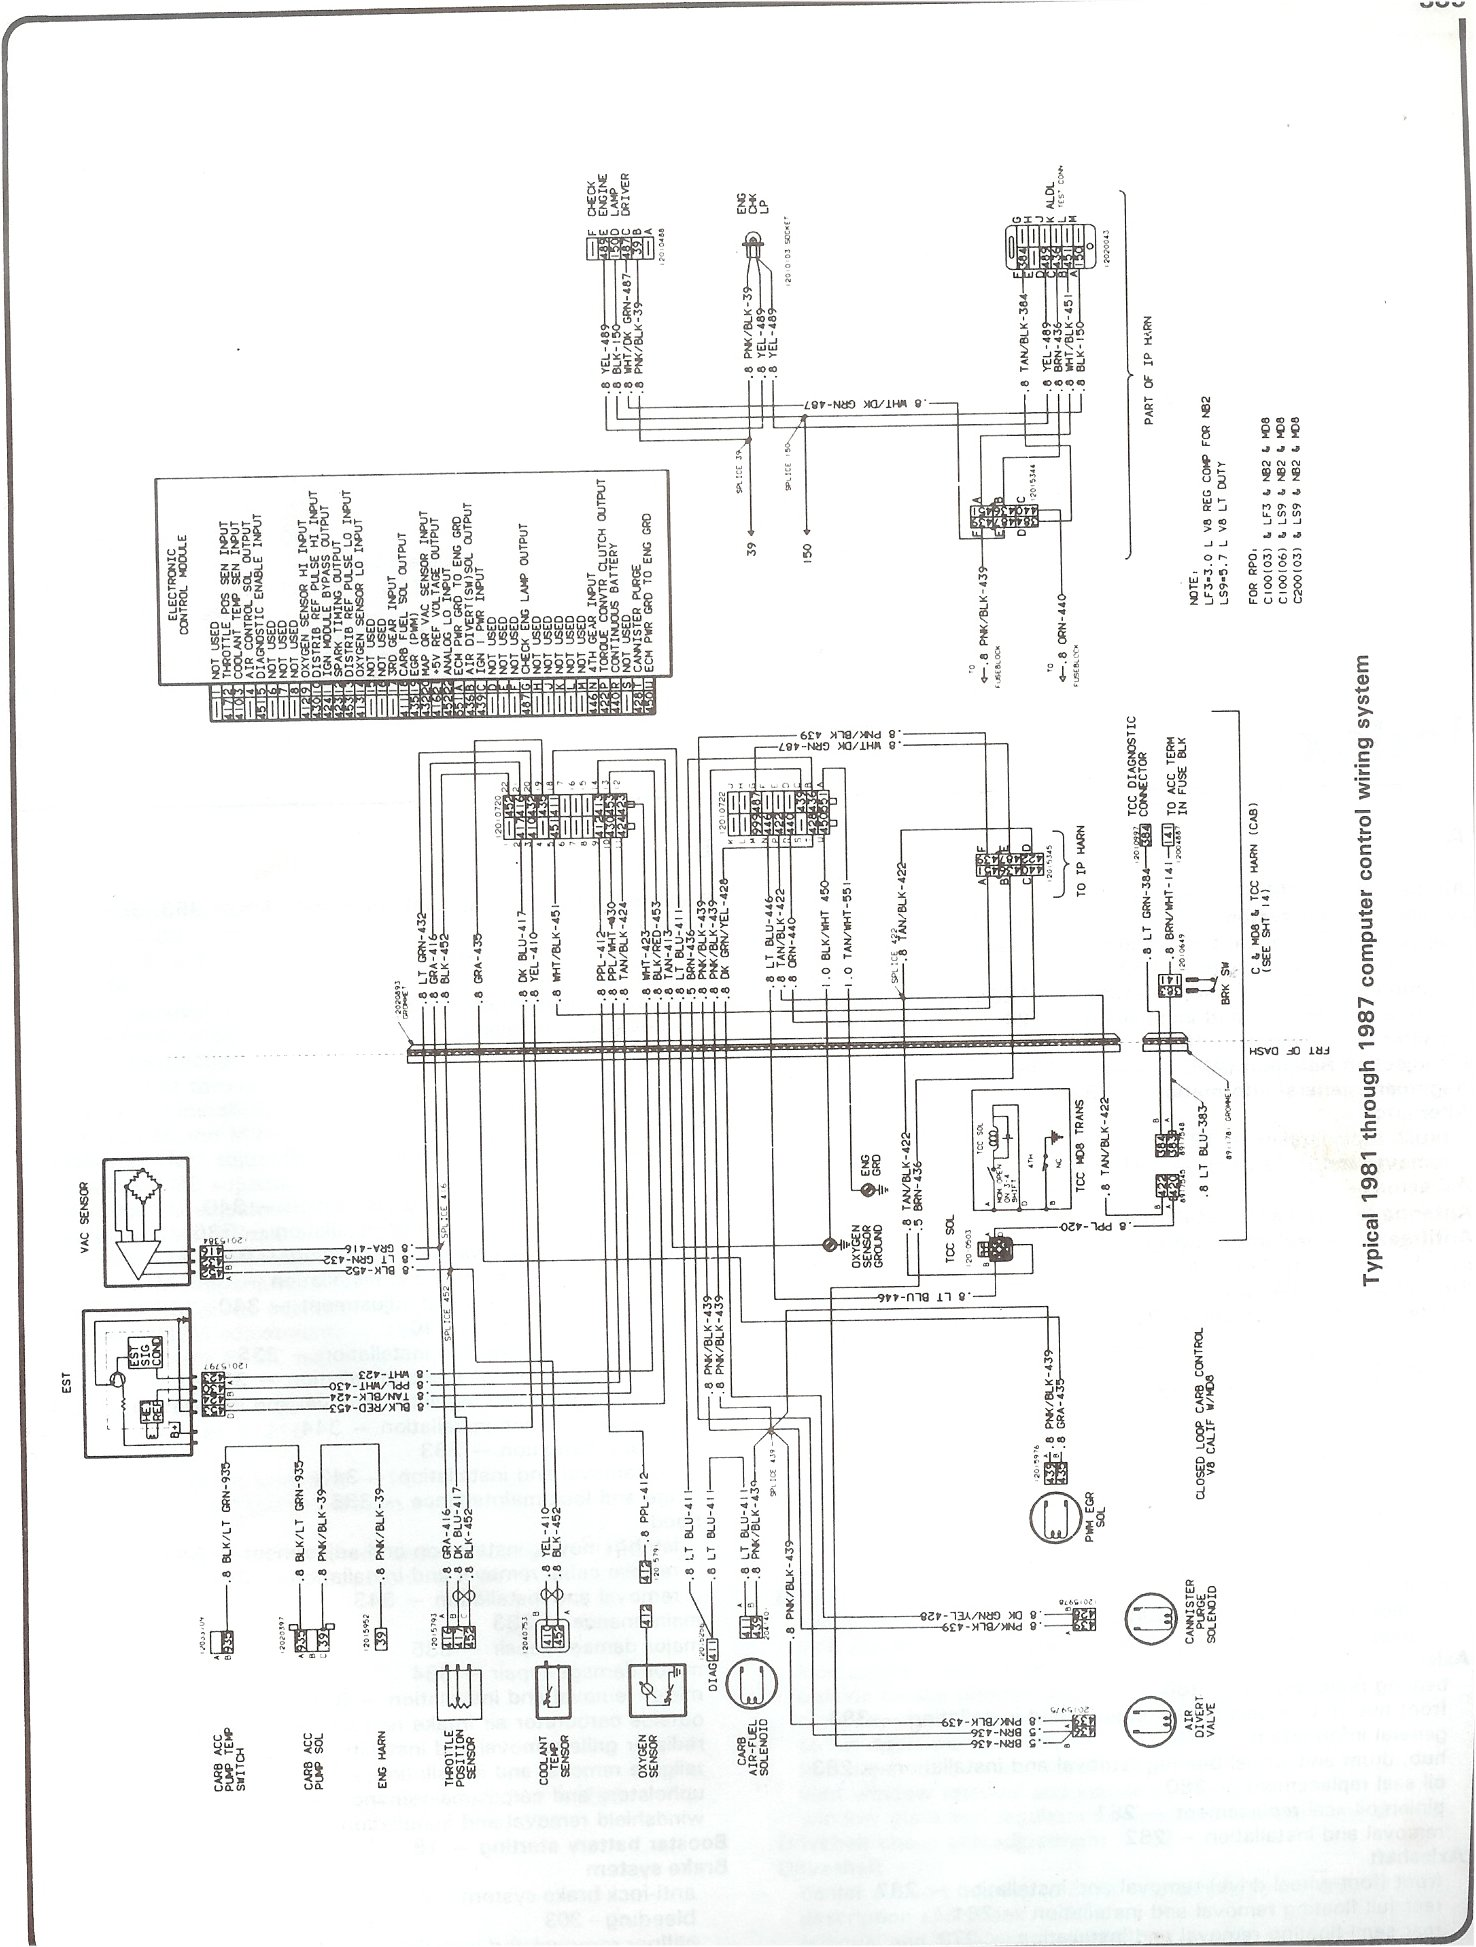 81 87_computer_control_wiring complete 73 87 wiring diagrams wiring diagrams 79 chevy blazer at fashall.co